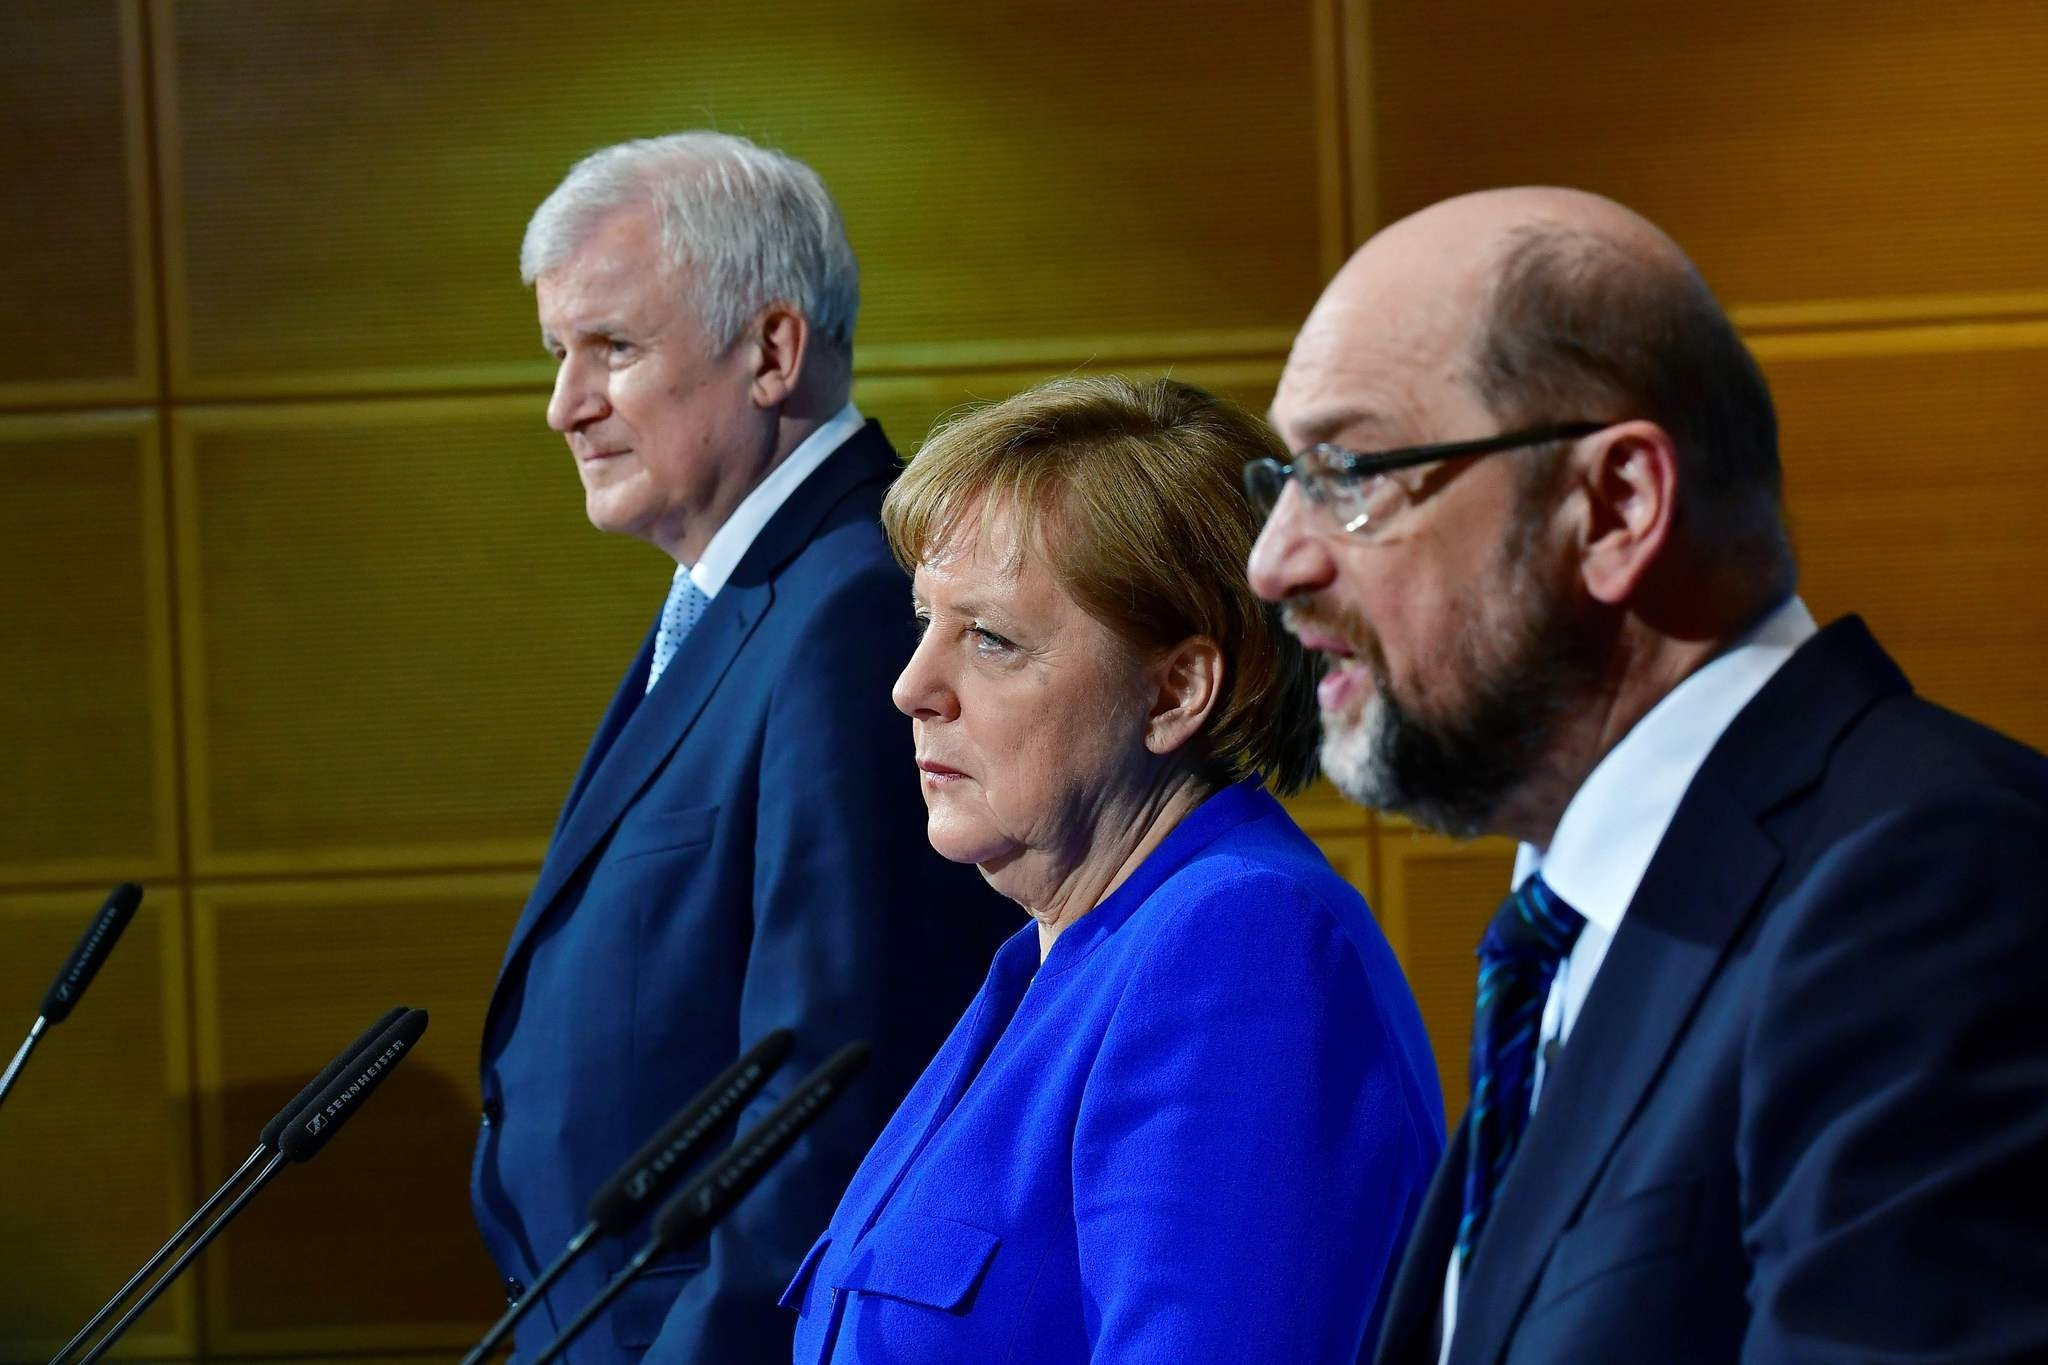 German Chancellor Angela Merkel's conservatives reached a ,breakthrough, deal with the country's second biggest party, the Social Democrats, toward building a new coalition government, sources close to the negotiations said. (AFP Photo)